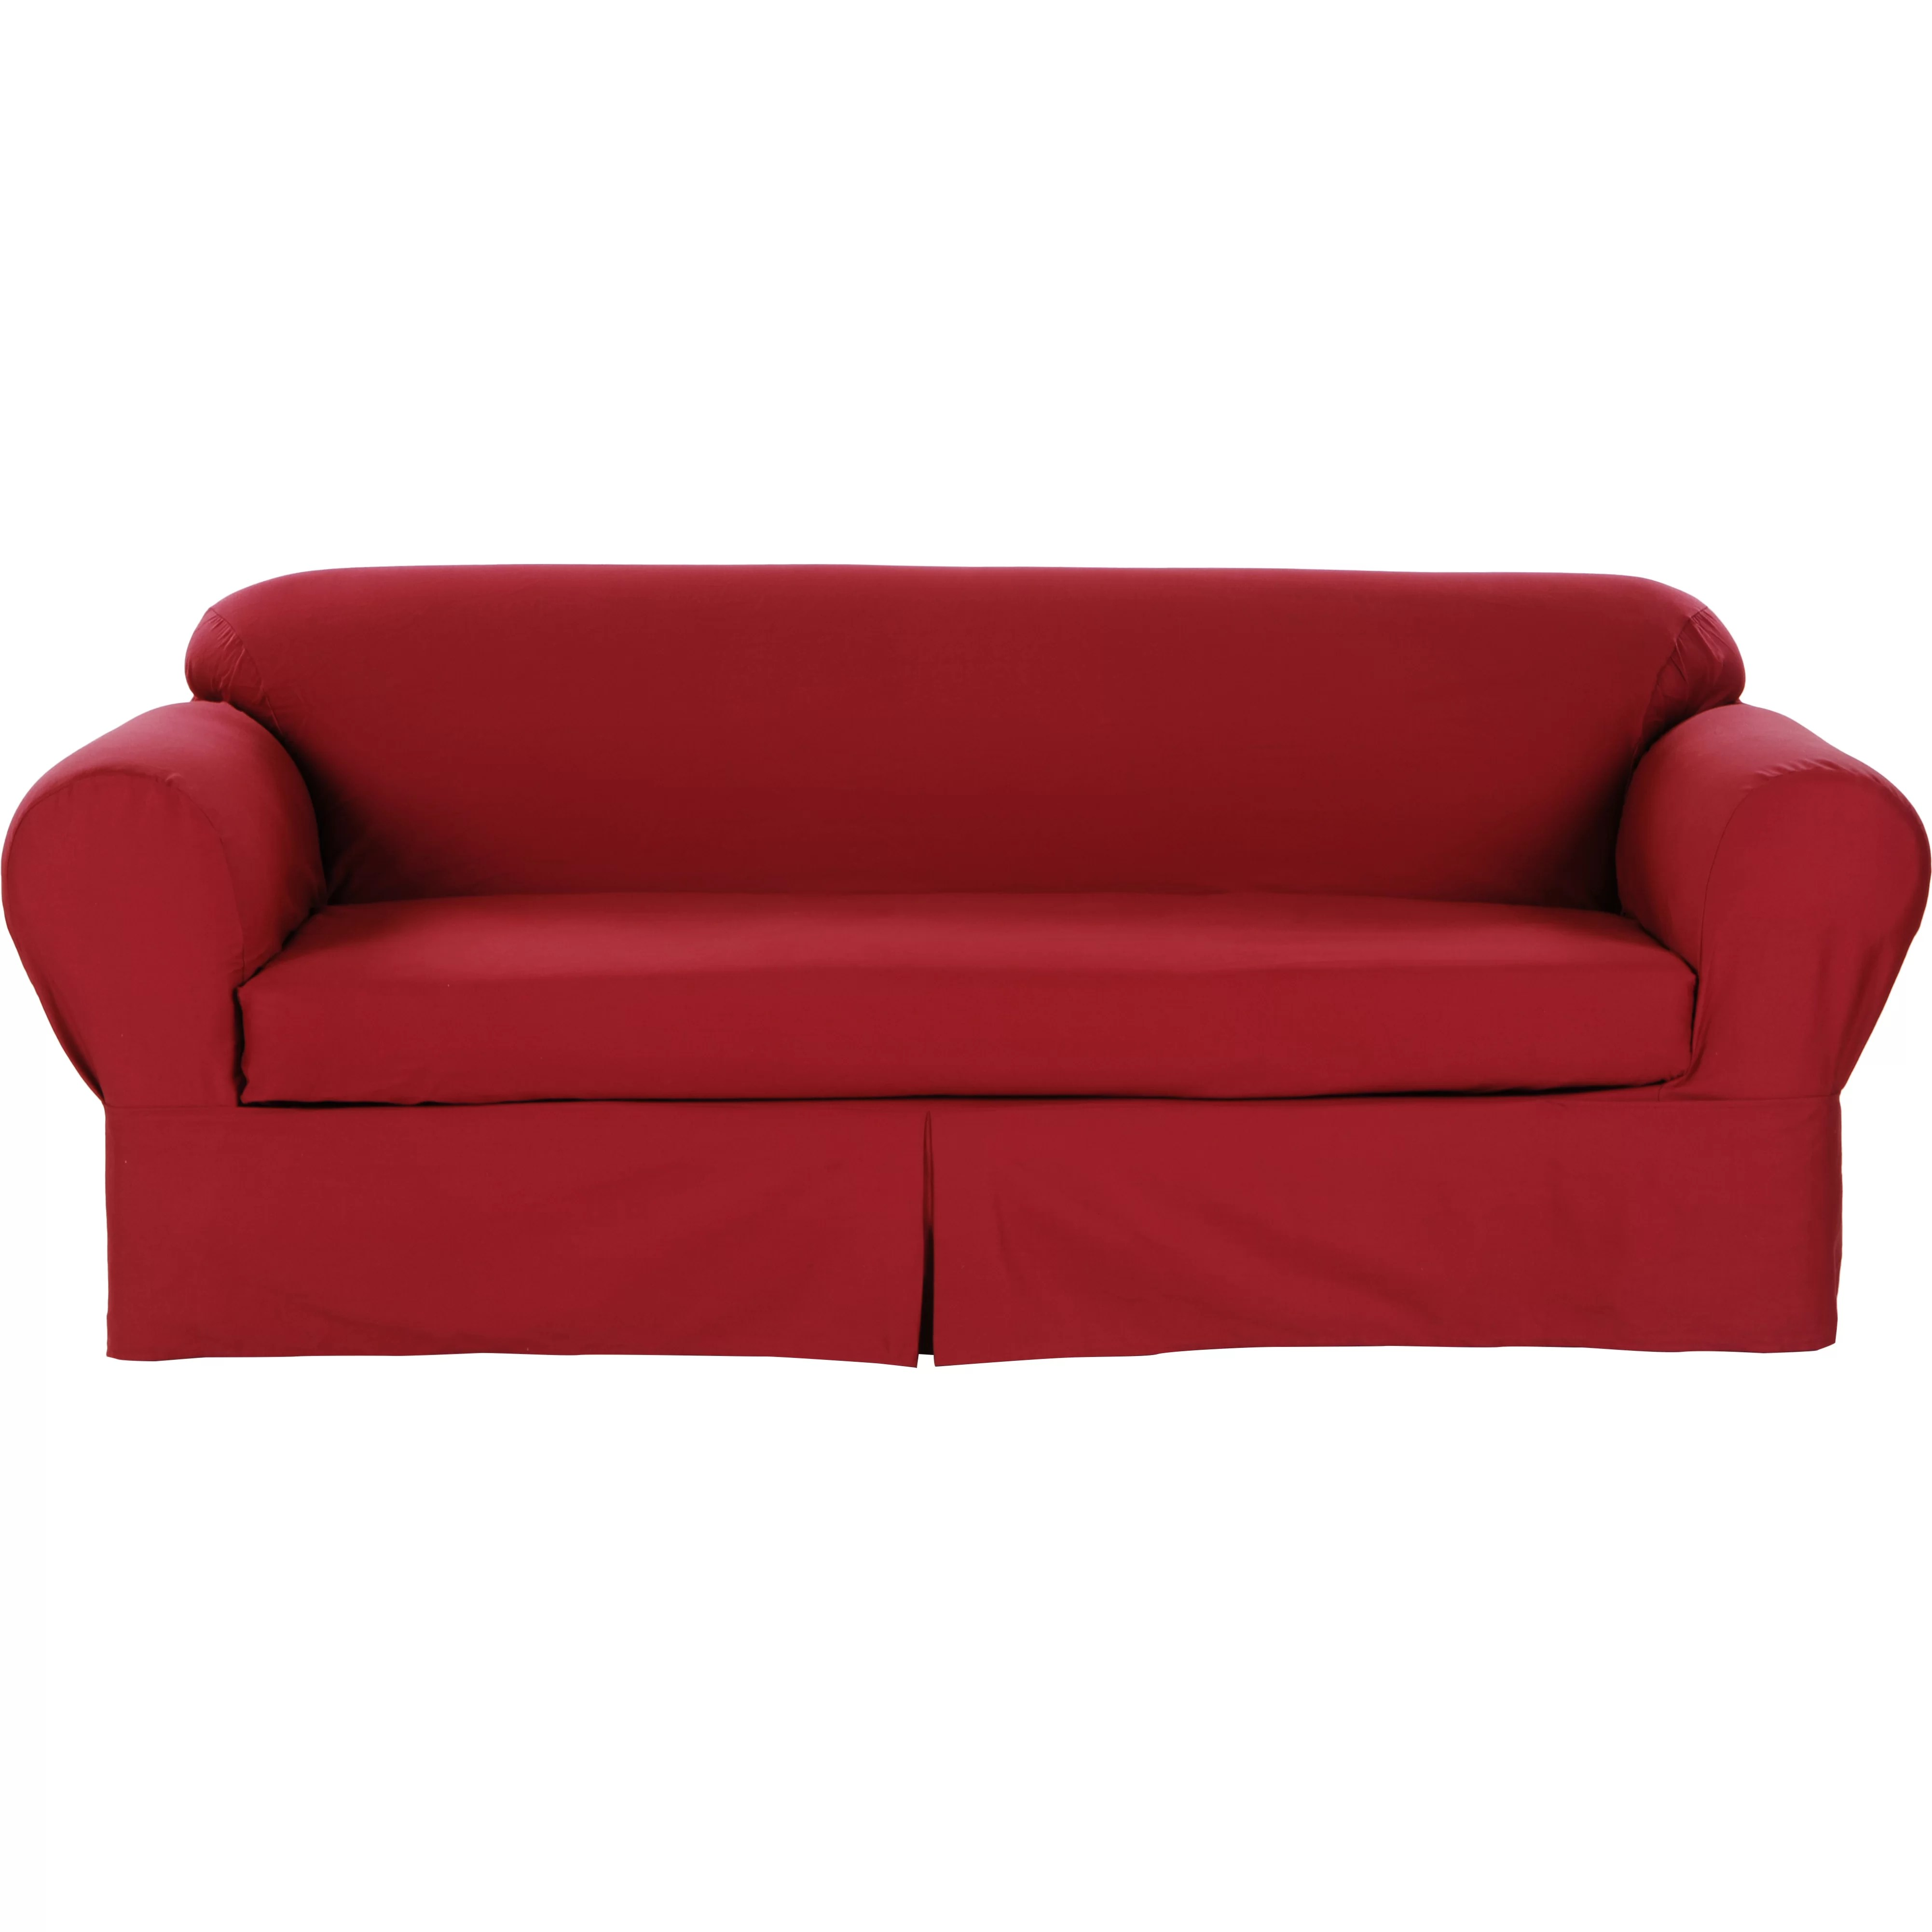 alex ii 89 sofa slipcover cheap red leather sofas uk darby home co and reviews wayfair